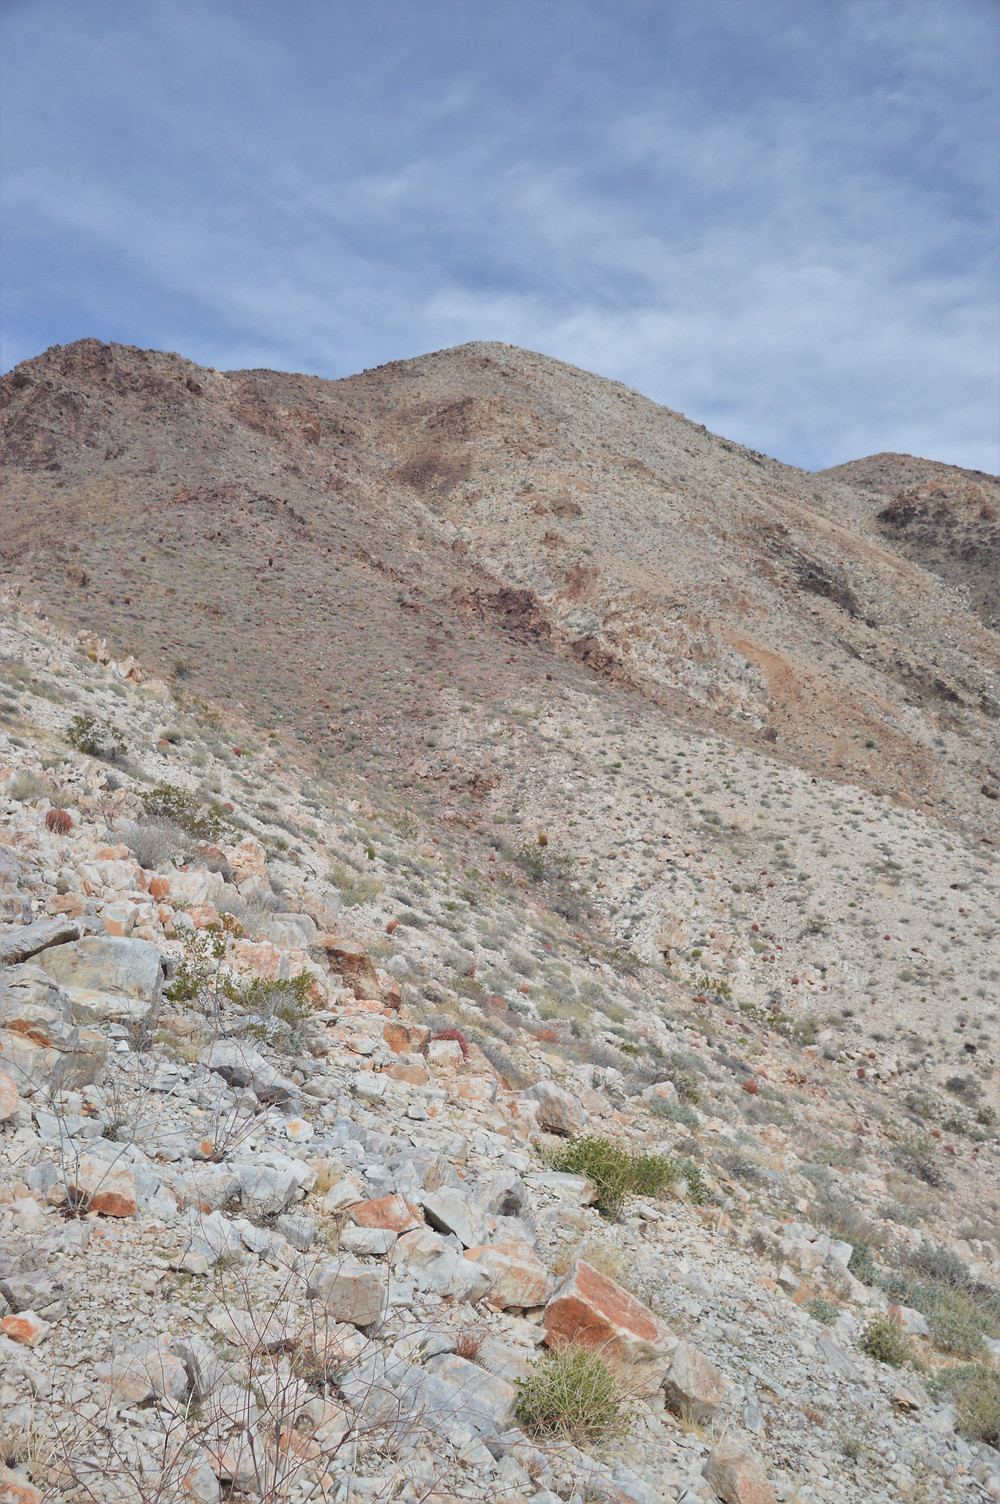 Scree covered path to Pinto Mountain summit in Joshua Tree National Park